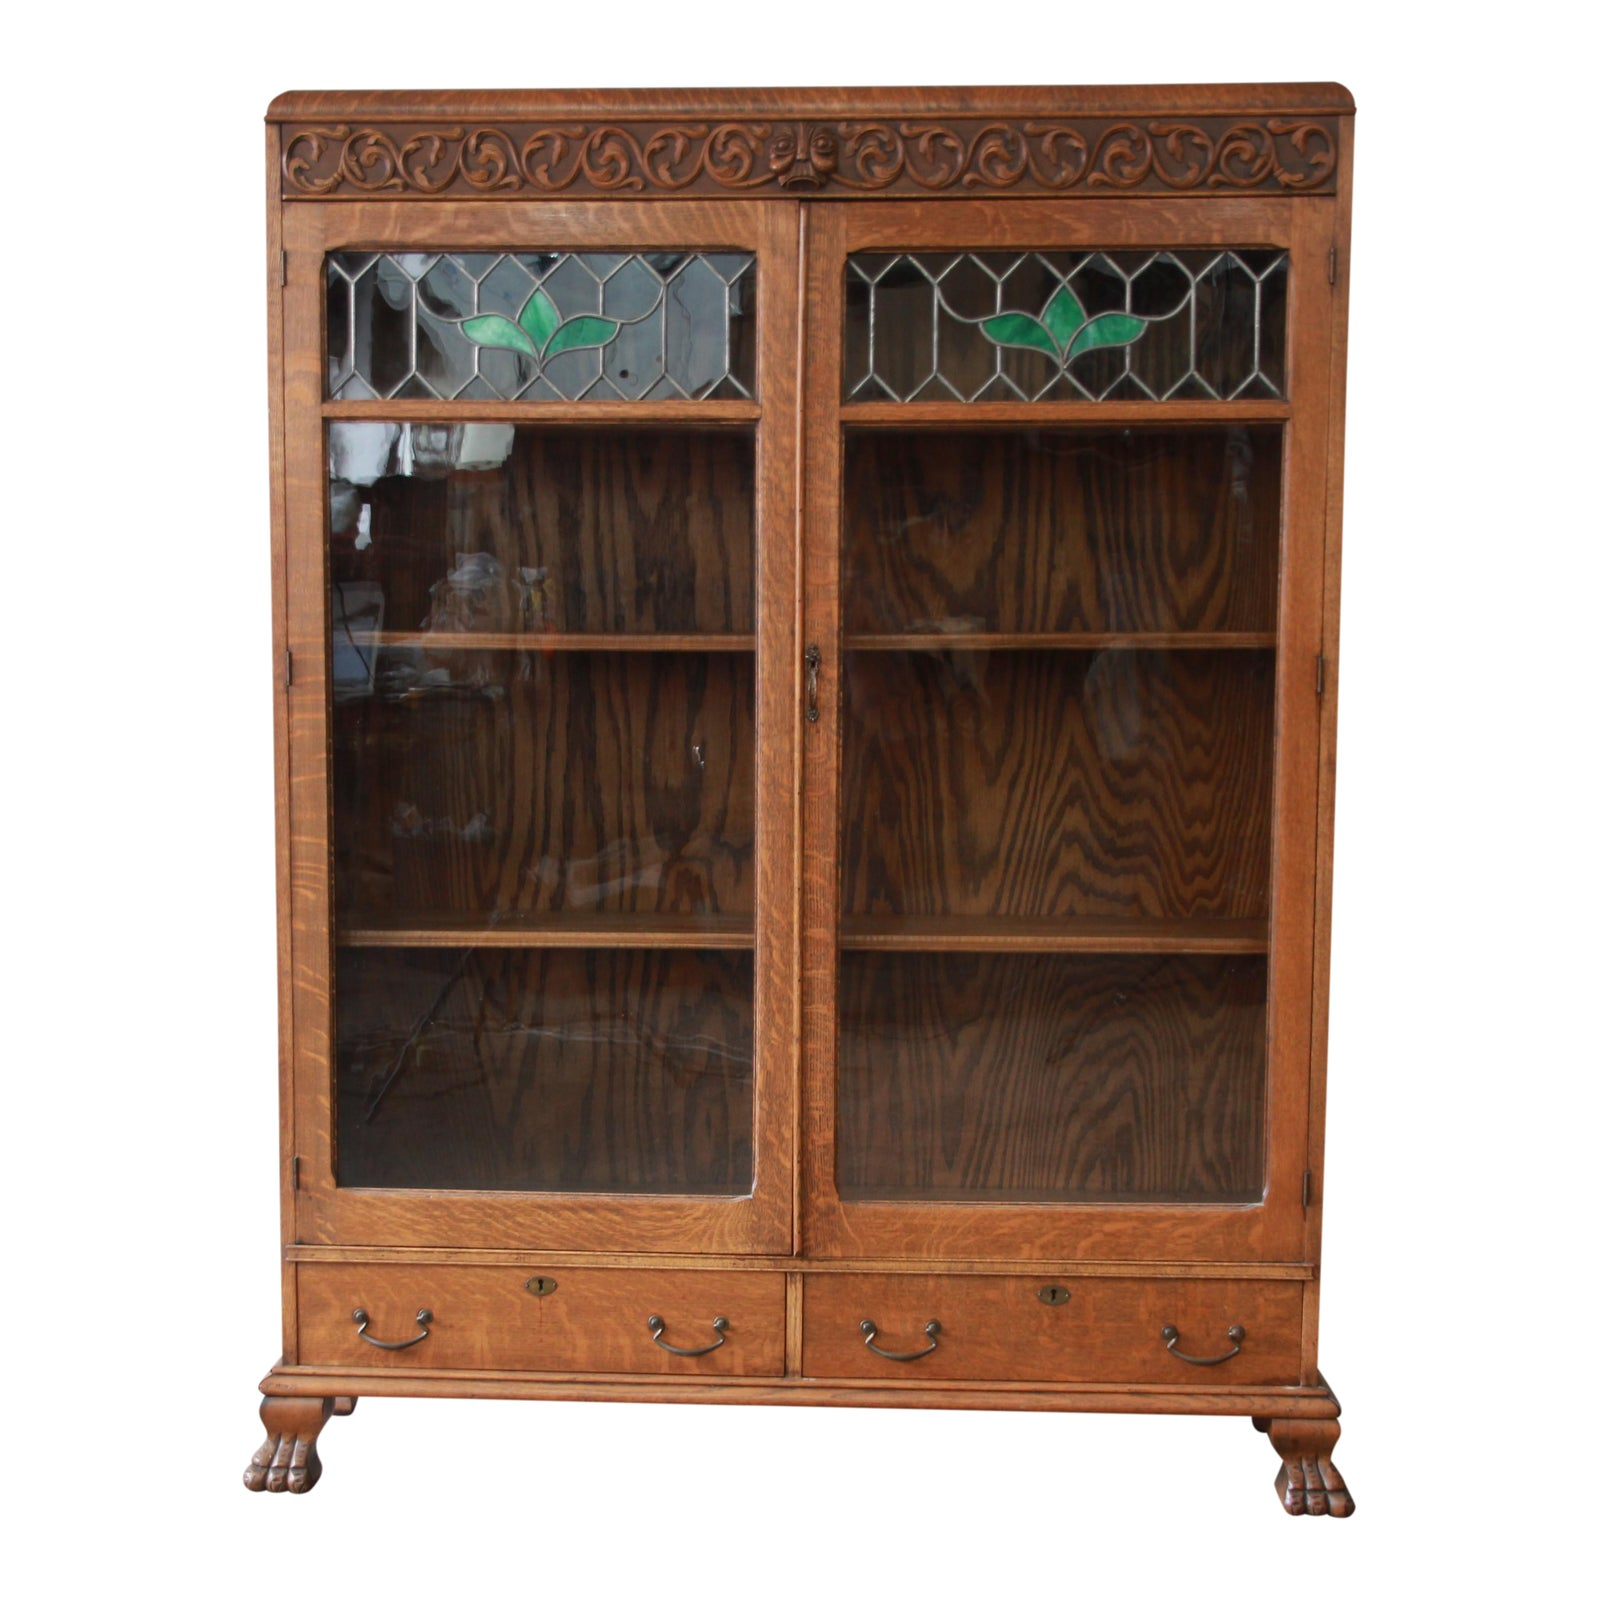 Antique Carved Oak Bookcase With Leaded Stained Glass Doors, Circa